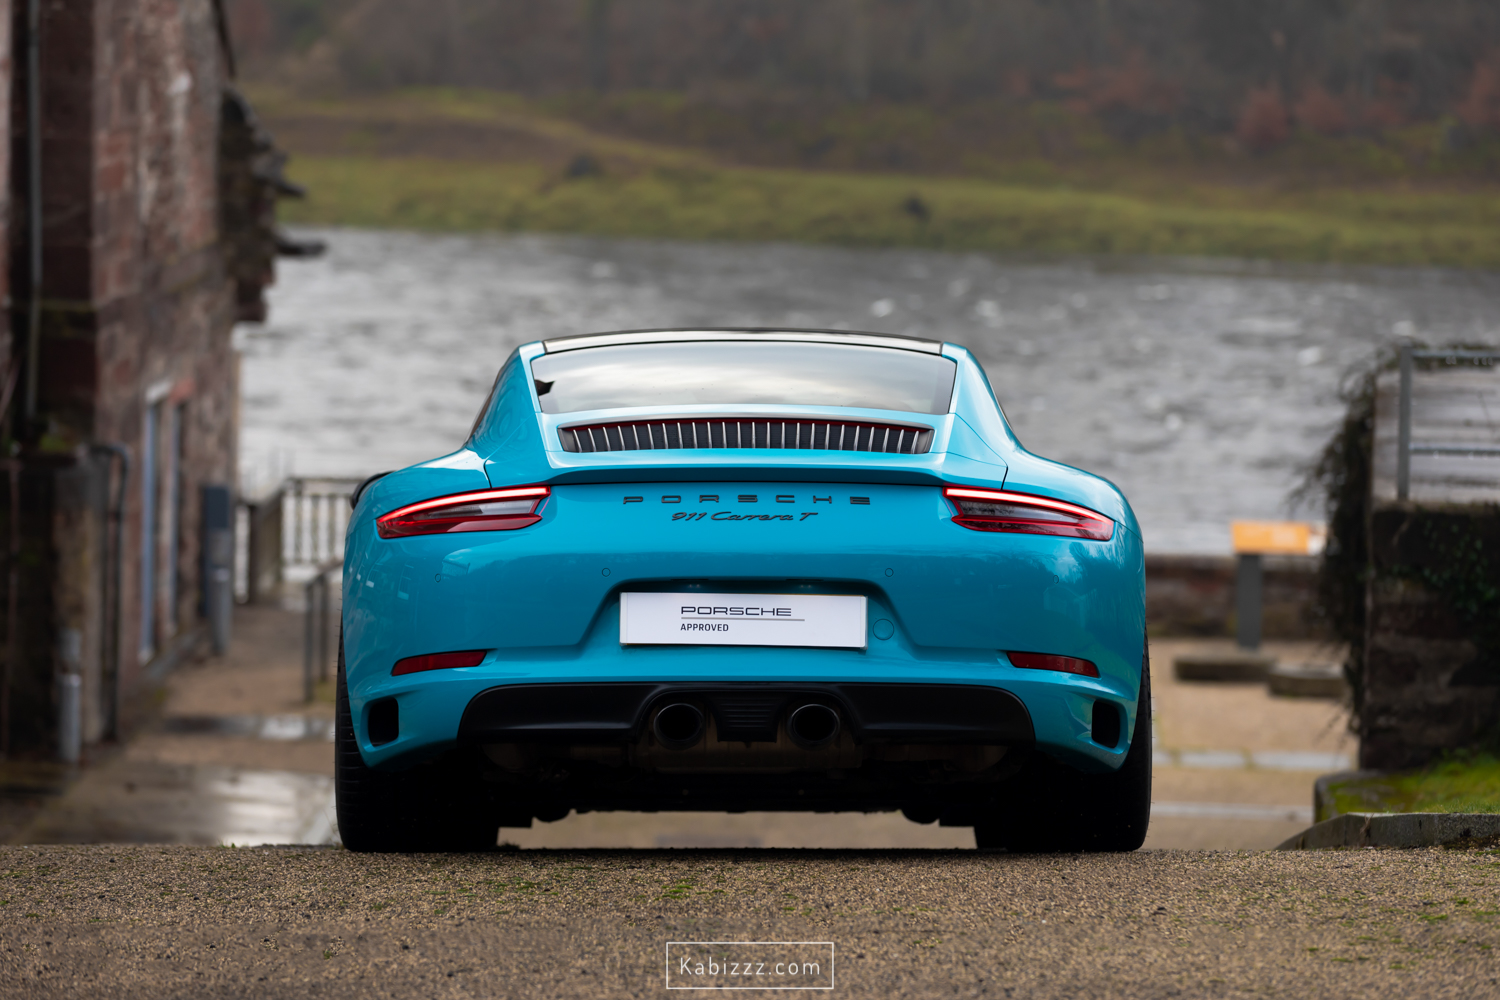 porsche_911_carrera_t_miamiblue_scotland_photography_automotive_photography_kabizzz-2.jpg